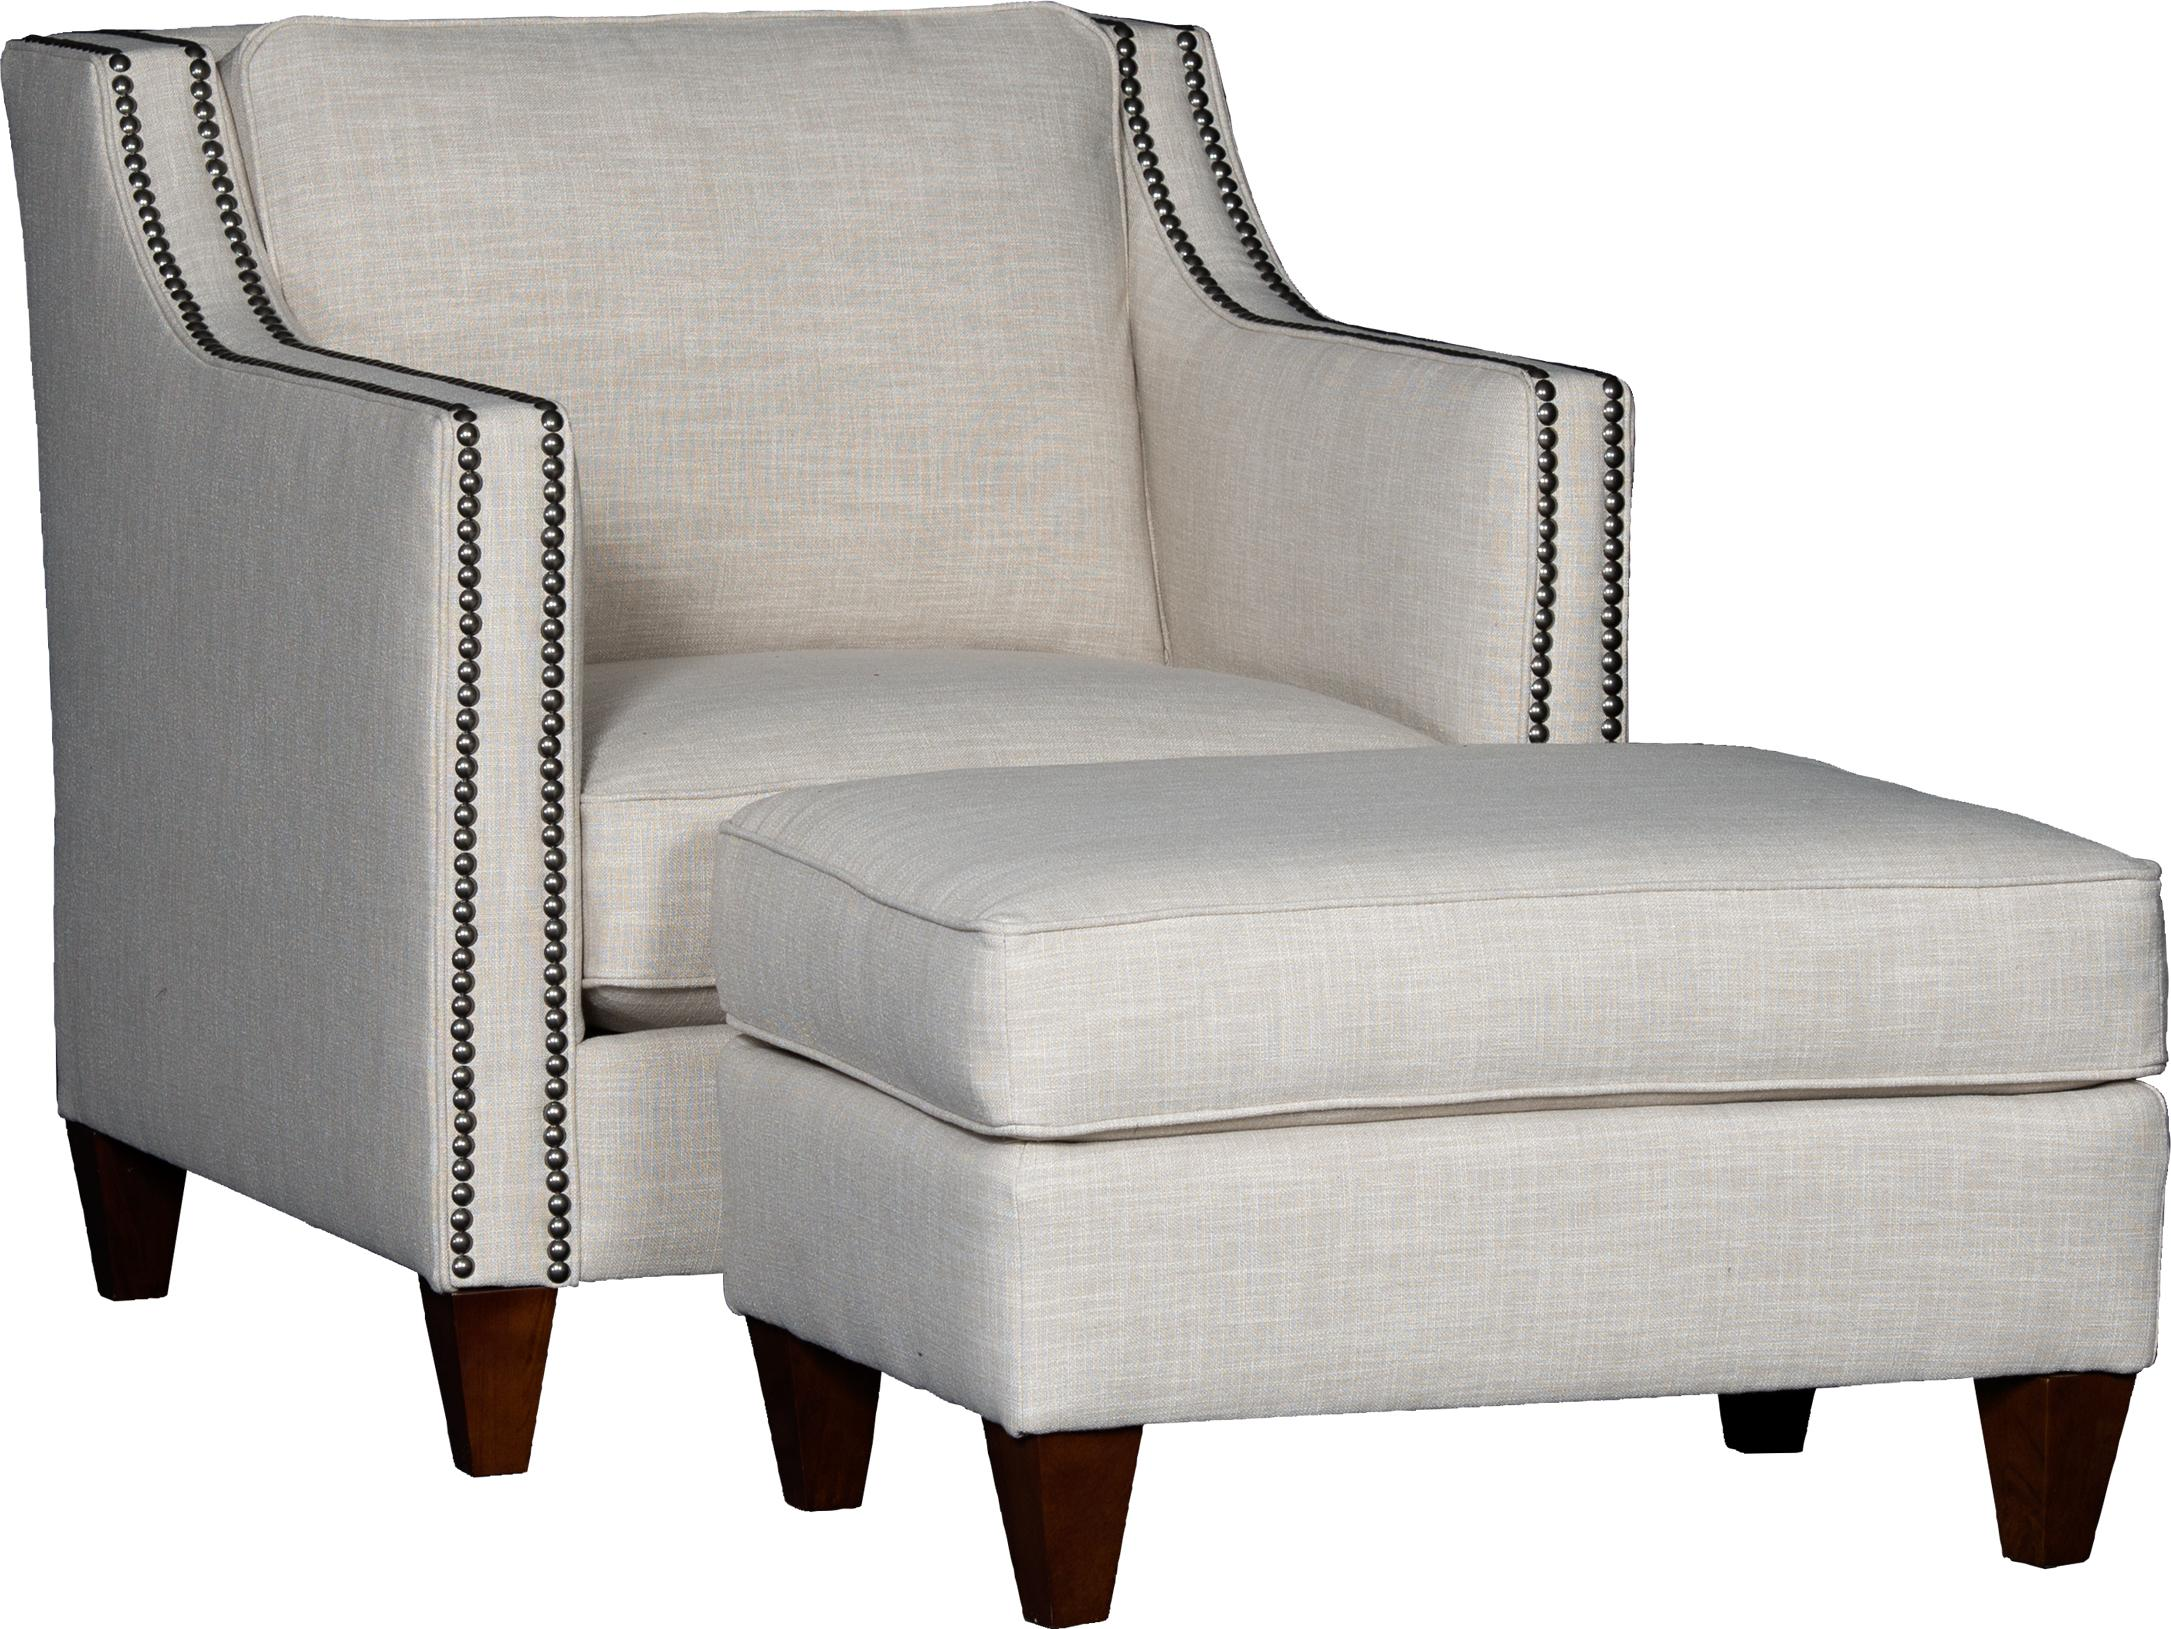 6170 Chair & Ottoman Set by Mayo at Pedigo Furniture